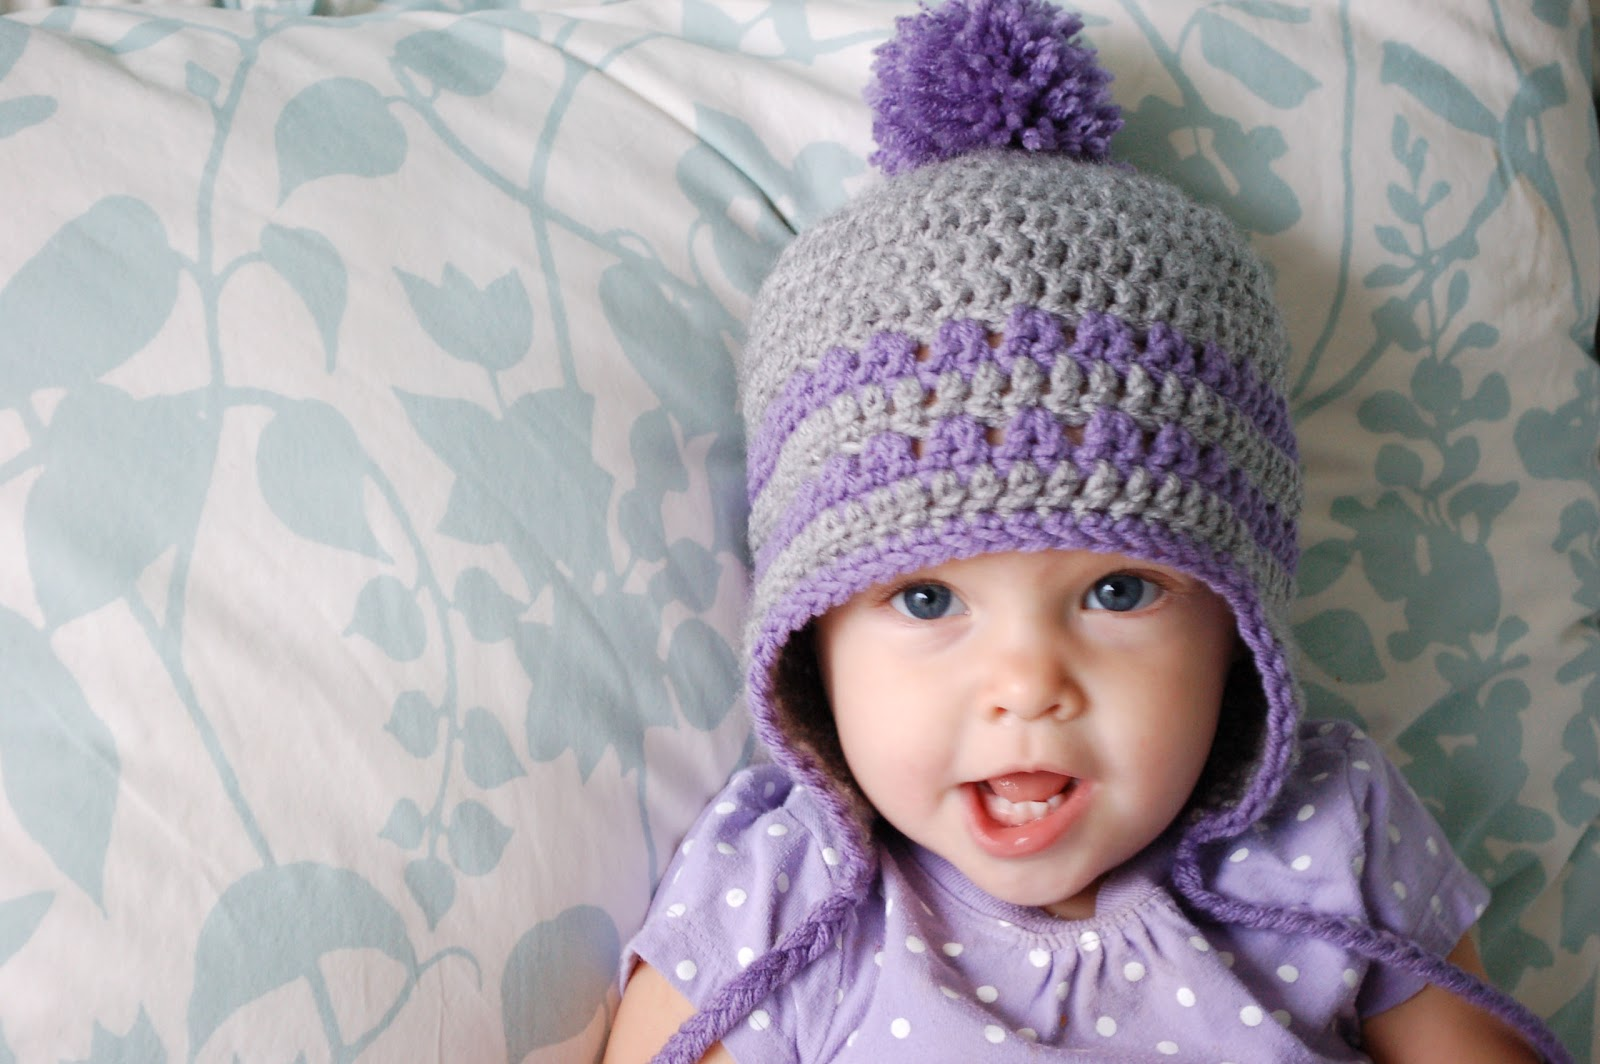 Crochet Pattern For Newborn Hat With Ear Flaps : Alli Crafts: Free Pattern: Earflap Hat - 9-12 Months